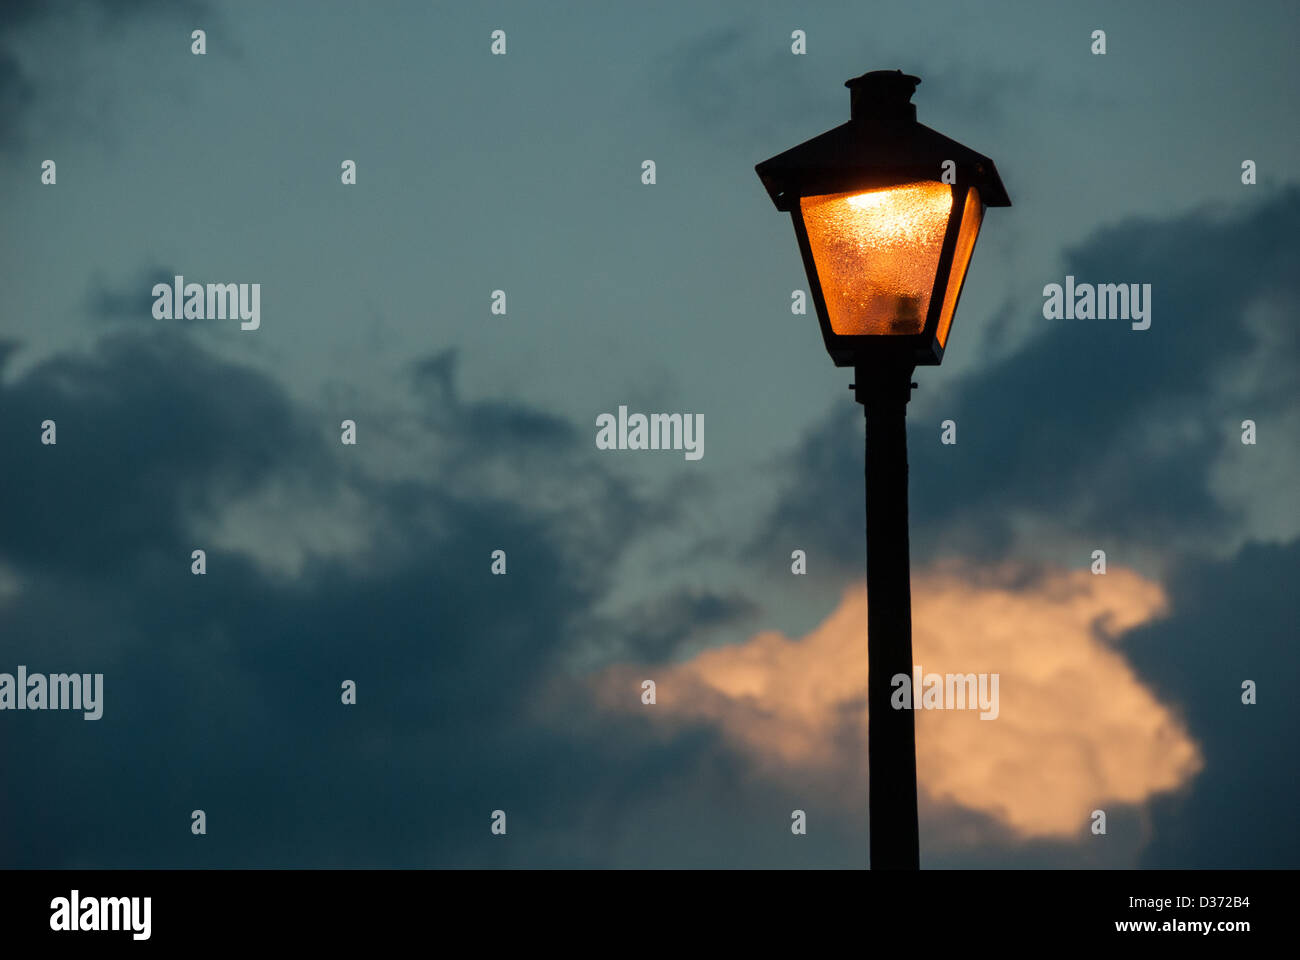 The warm glow from a lamp post appears to illuminate a cloud in the last light of dusk. - Stock Image